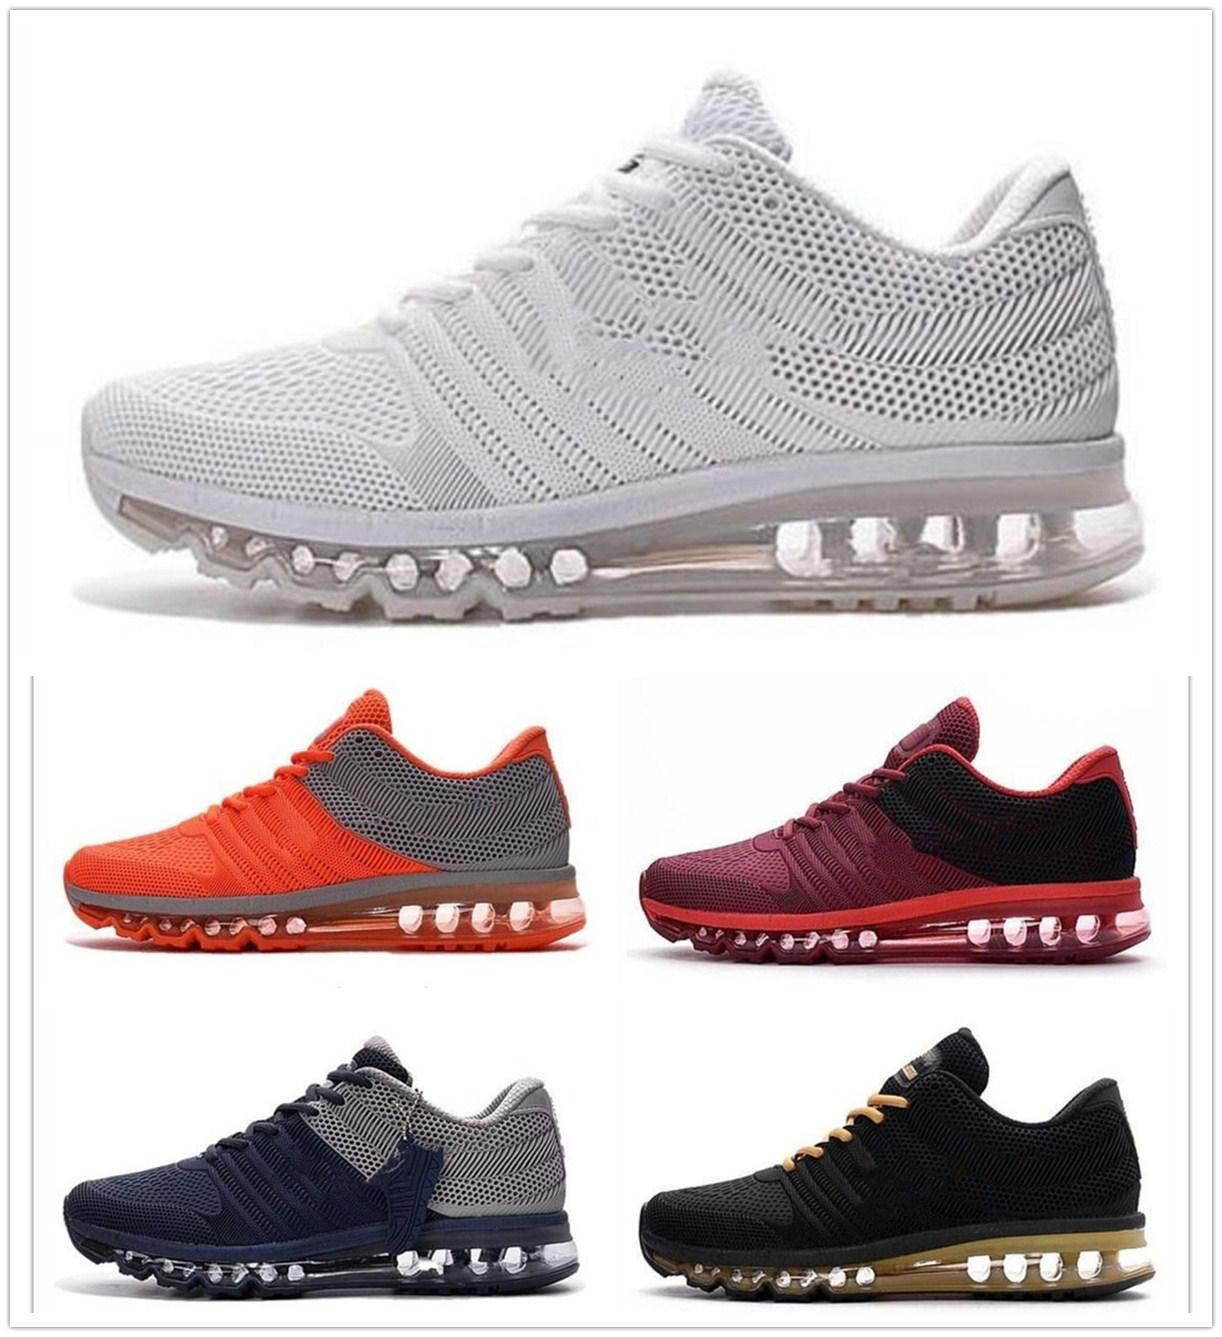 2017 Maxes Brand Plastic KPU Casual Shoes Best Sale Cheap Casual Shoes For  Men Women Maxes High Quality Outdoor Eur 40 47 Womens Sandals Comfortable  Shoes ... f7dc67656